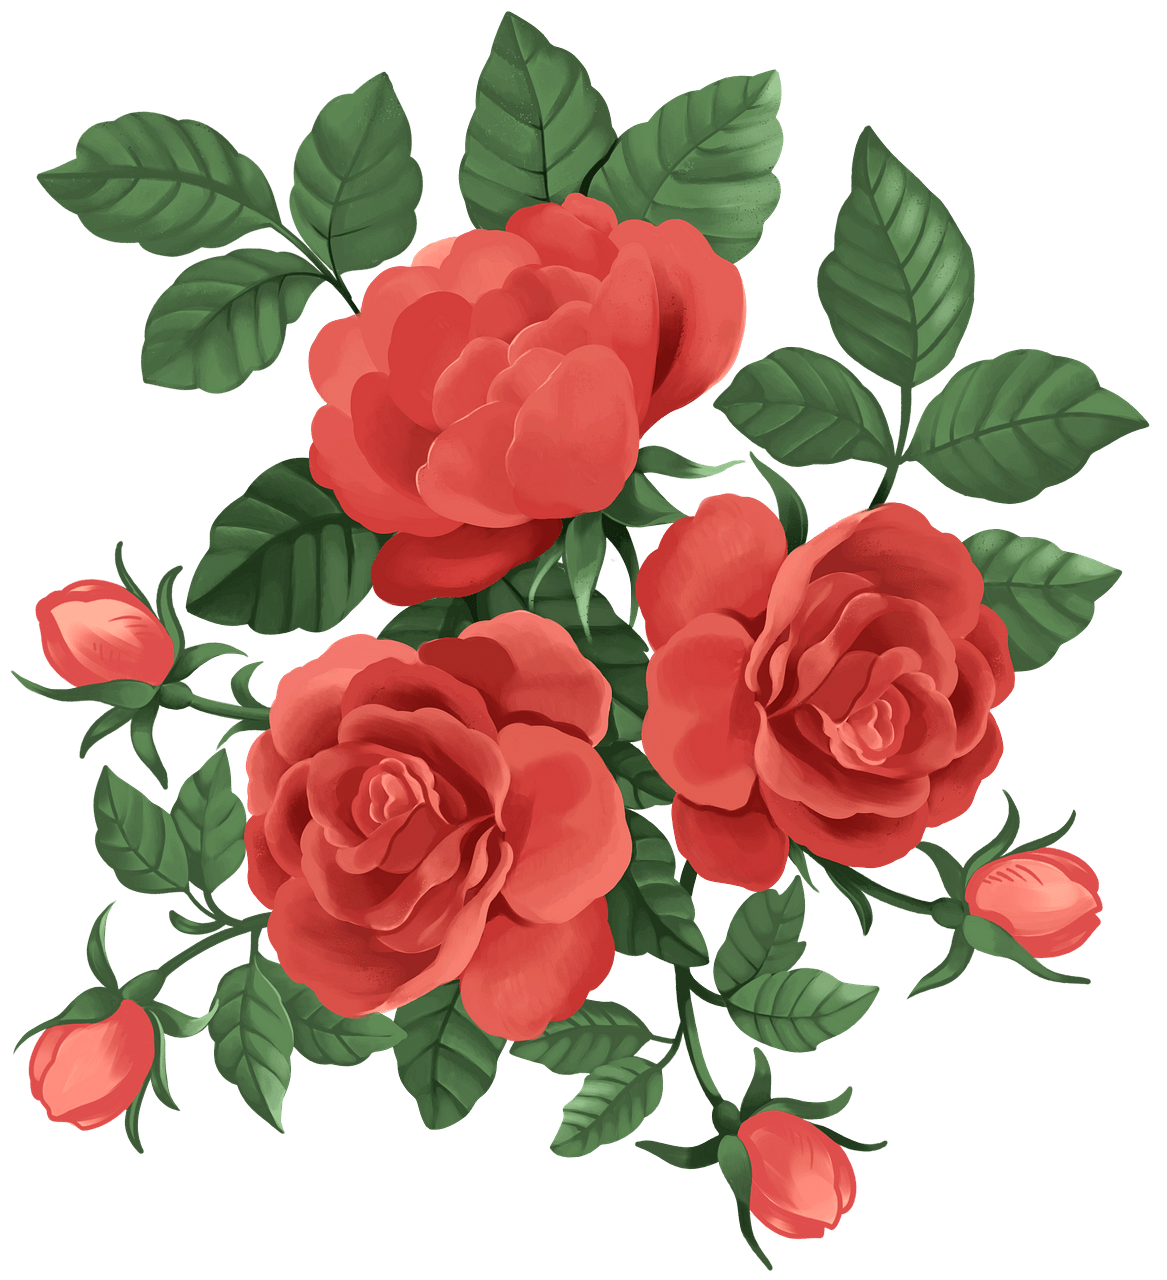 Red roses clipart. Free download..